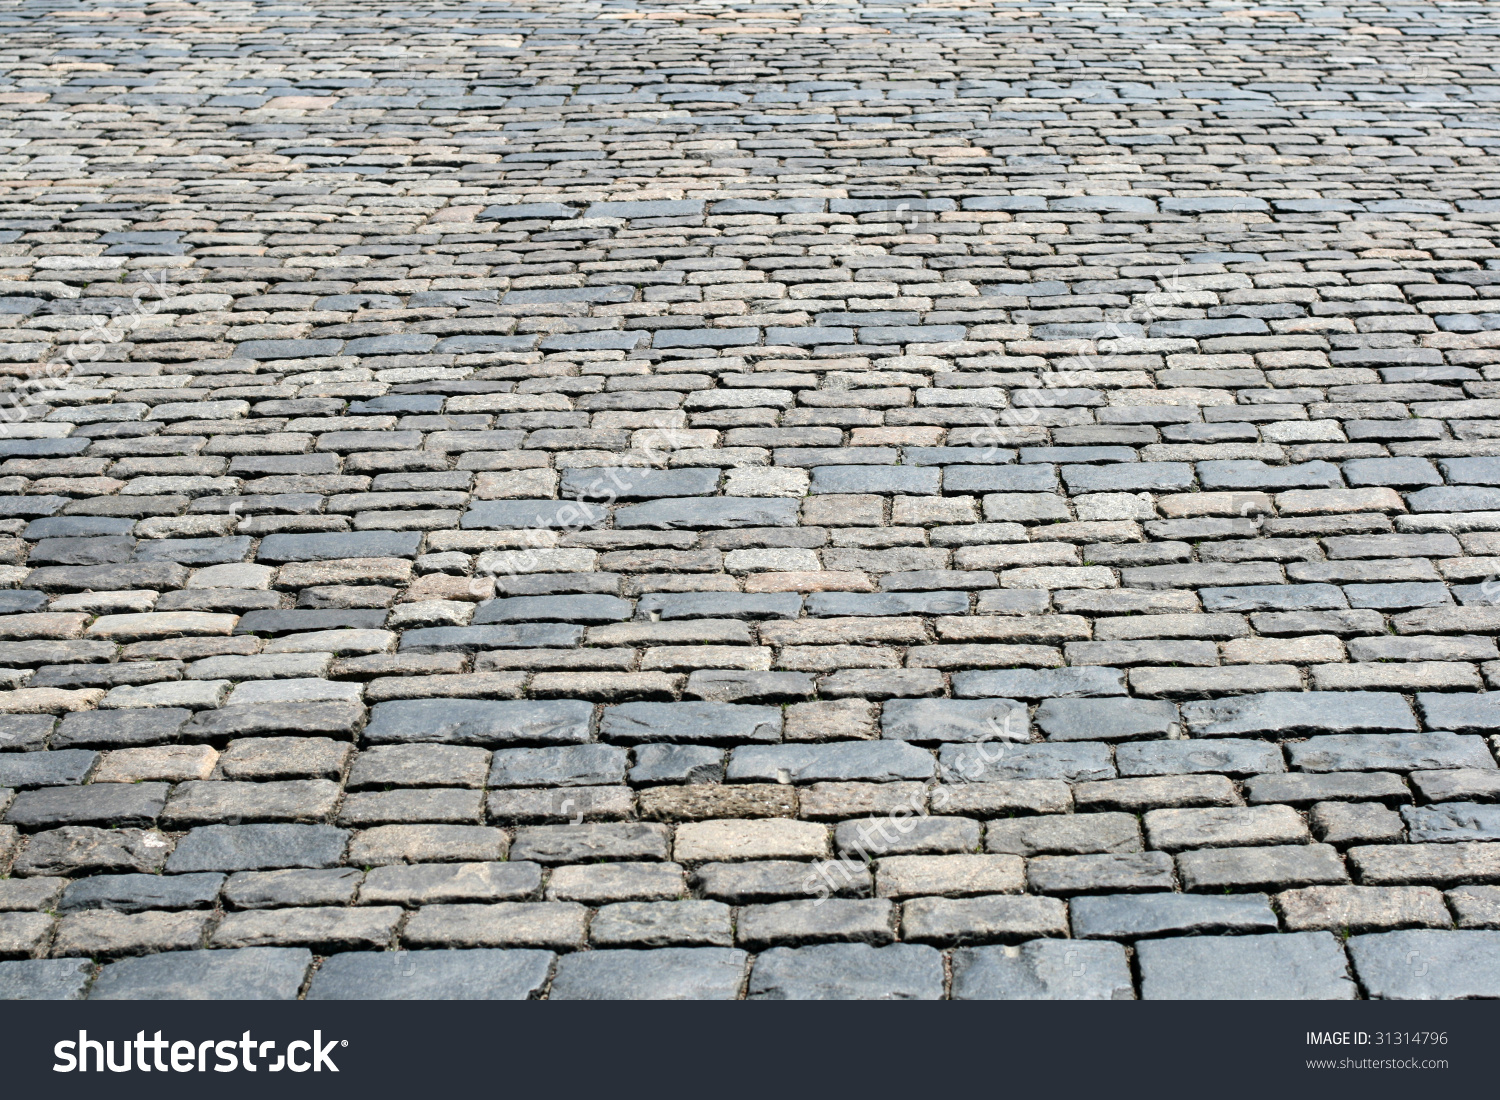 Cobblestone Pavement At Red Square, Moscow, Russia Stock Photo.